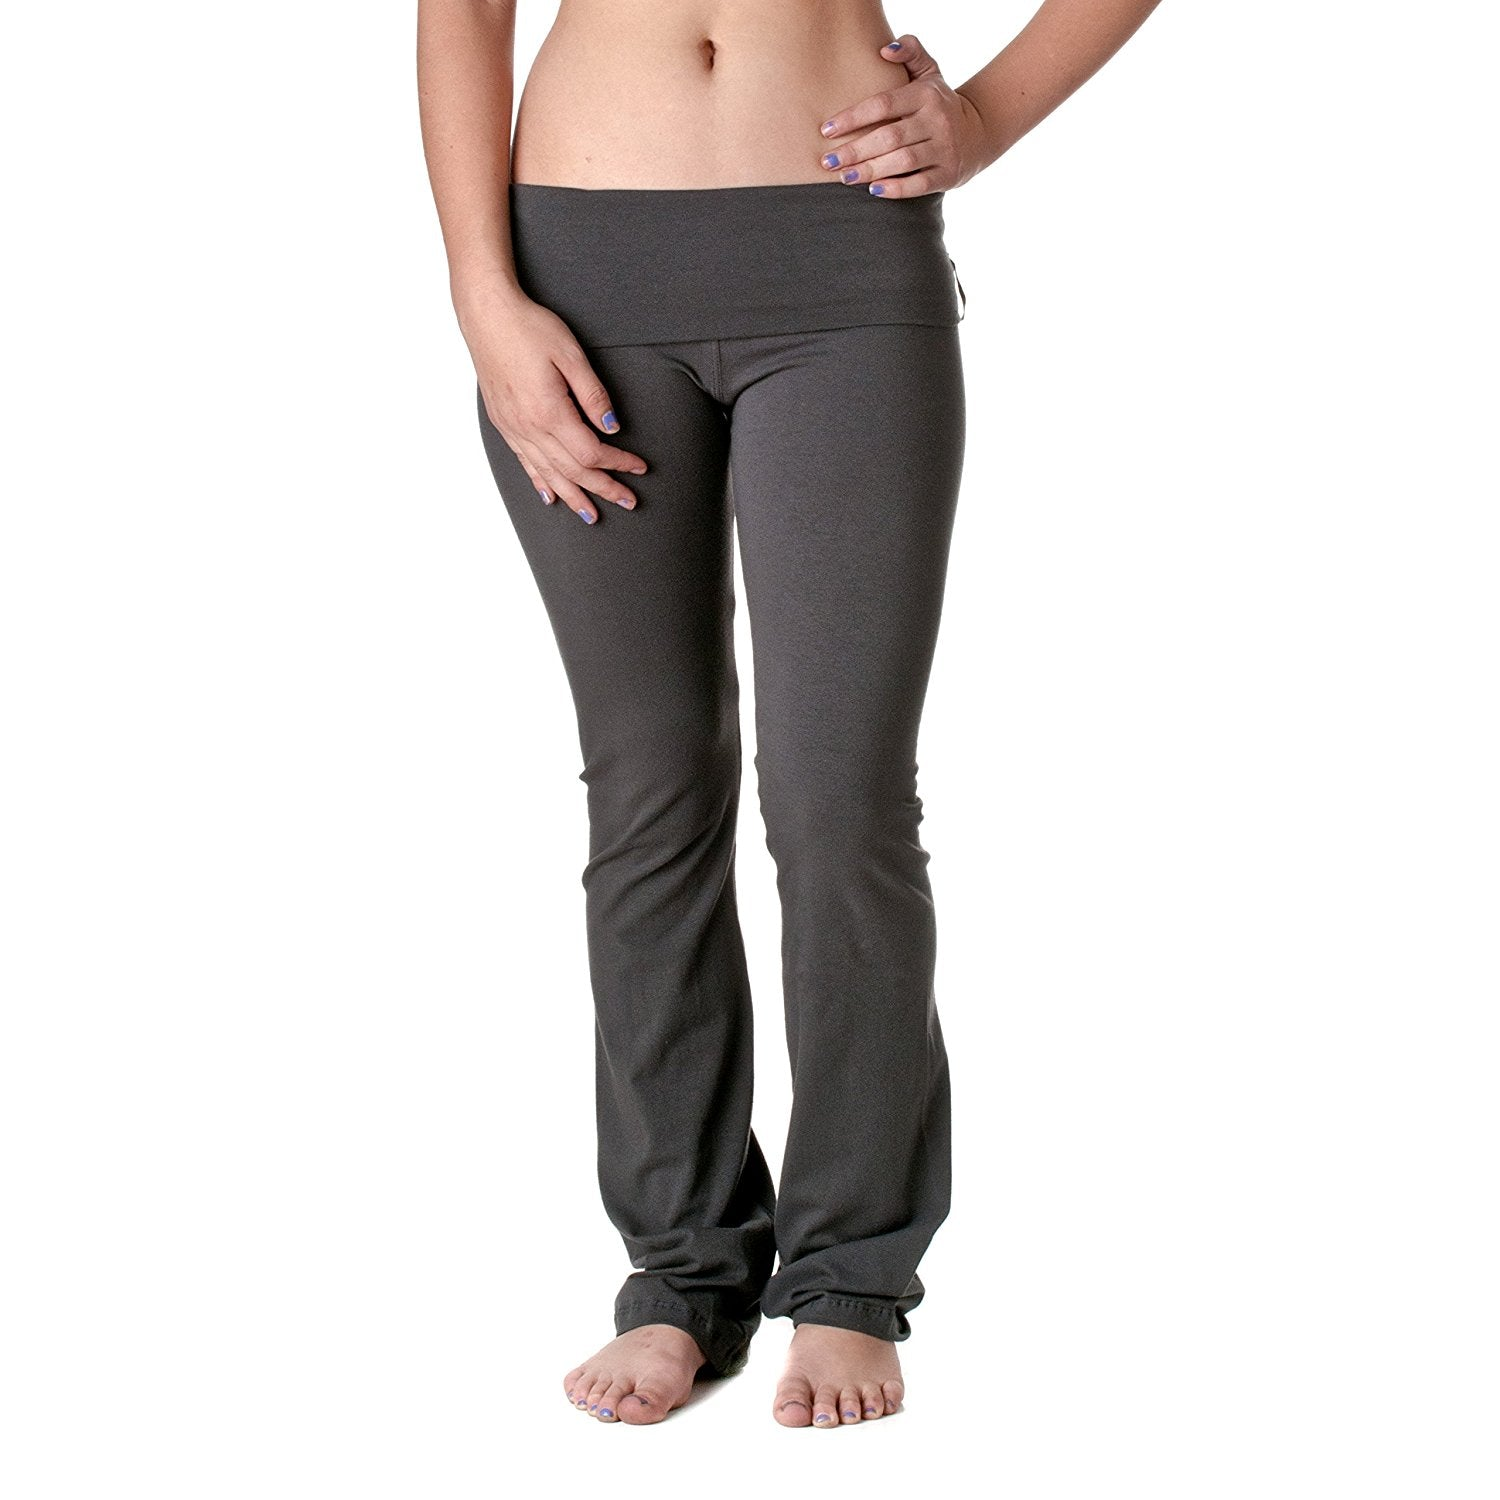 Hollywood Star Fashion Women's Slimming Foldover Bootleg Flare Yoga Pants